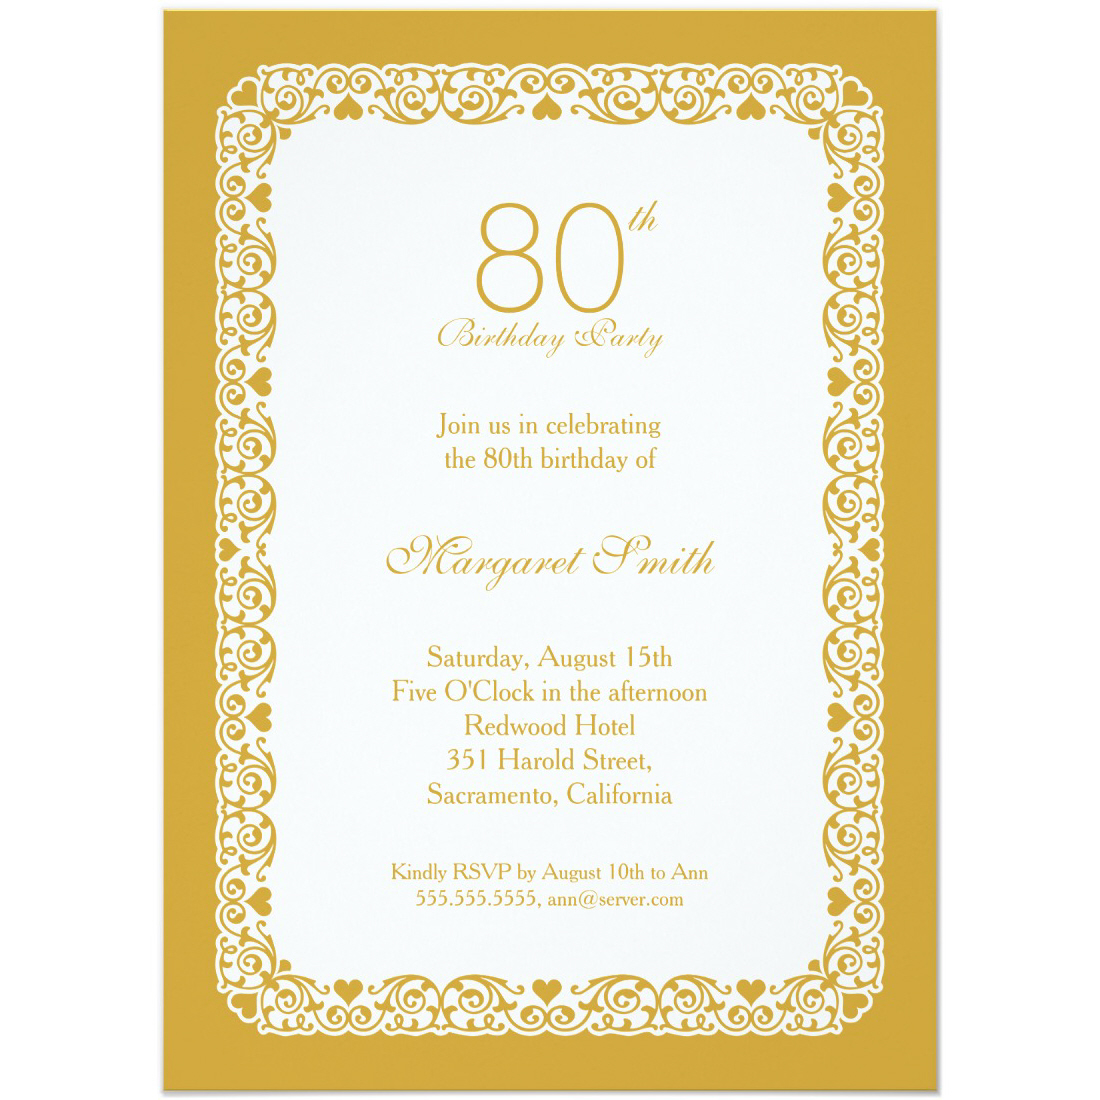 Wedding Rehearsal Invitations Templates is perfect invitations template